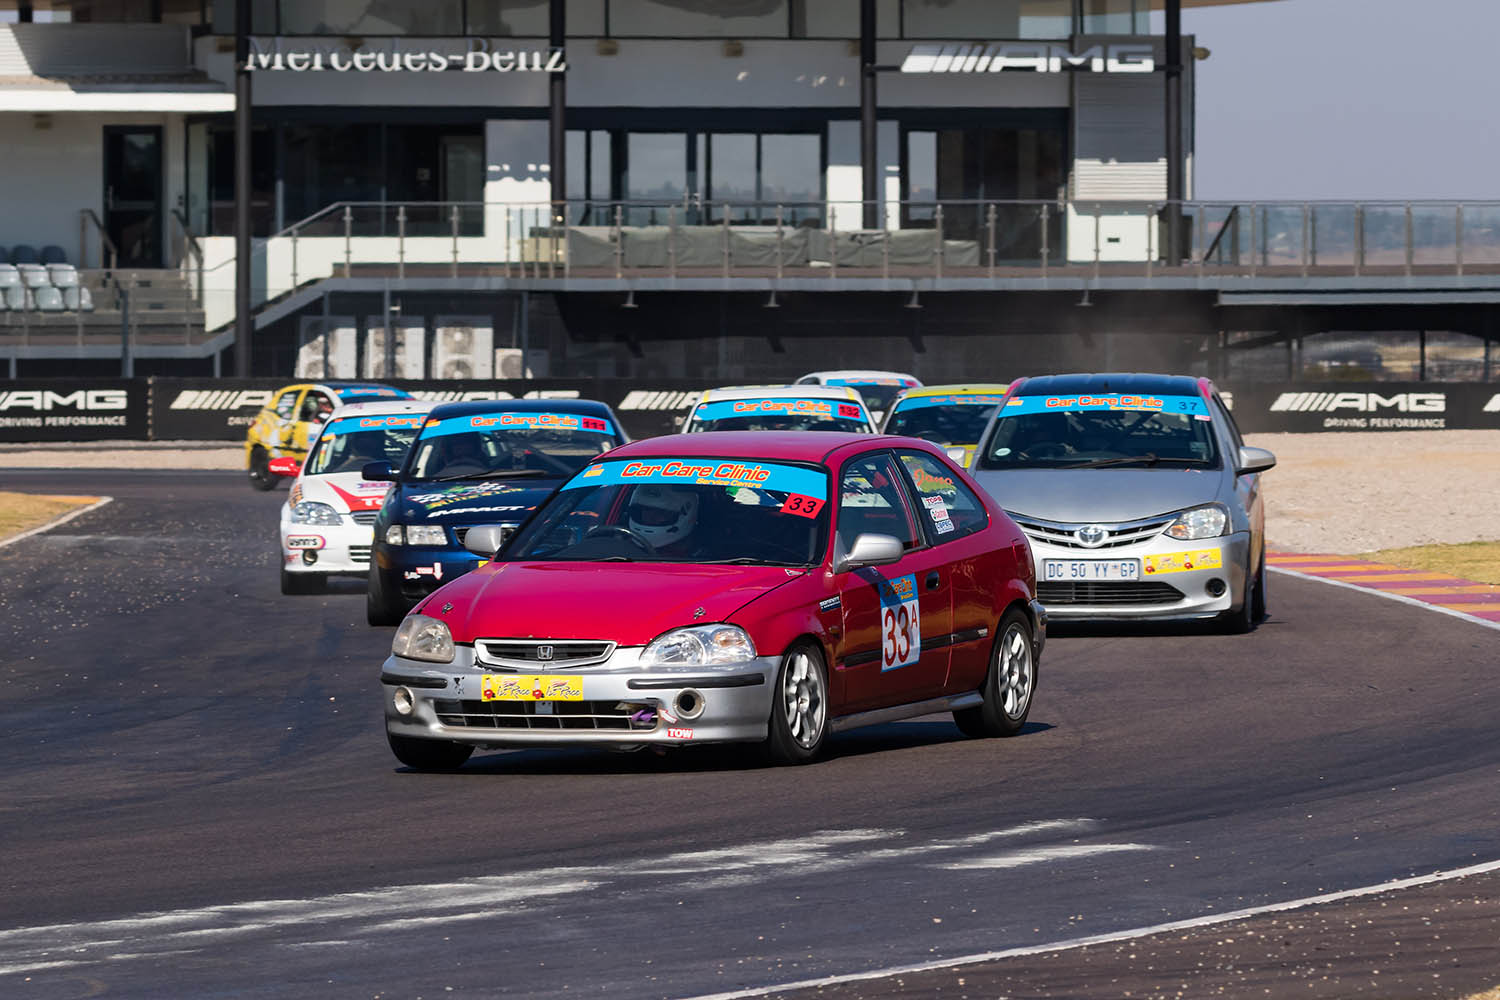 Jonathan du Toit leads the Class A pack